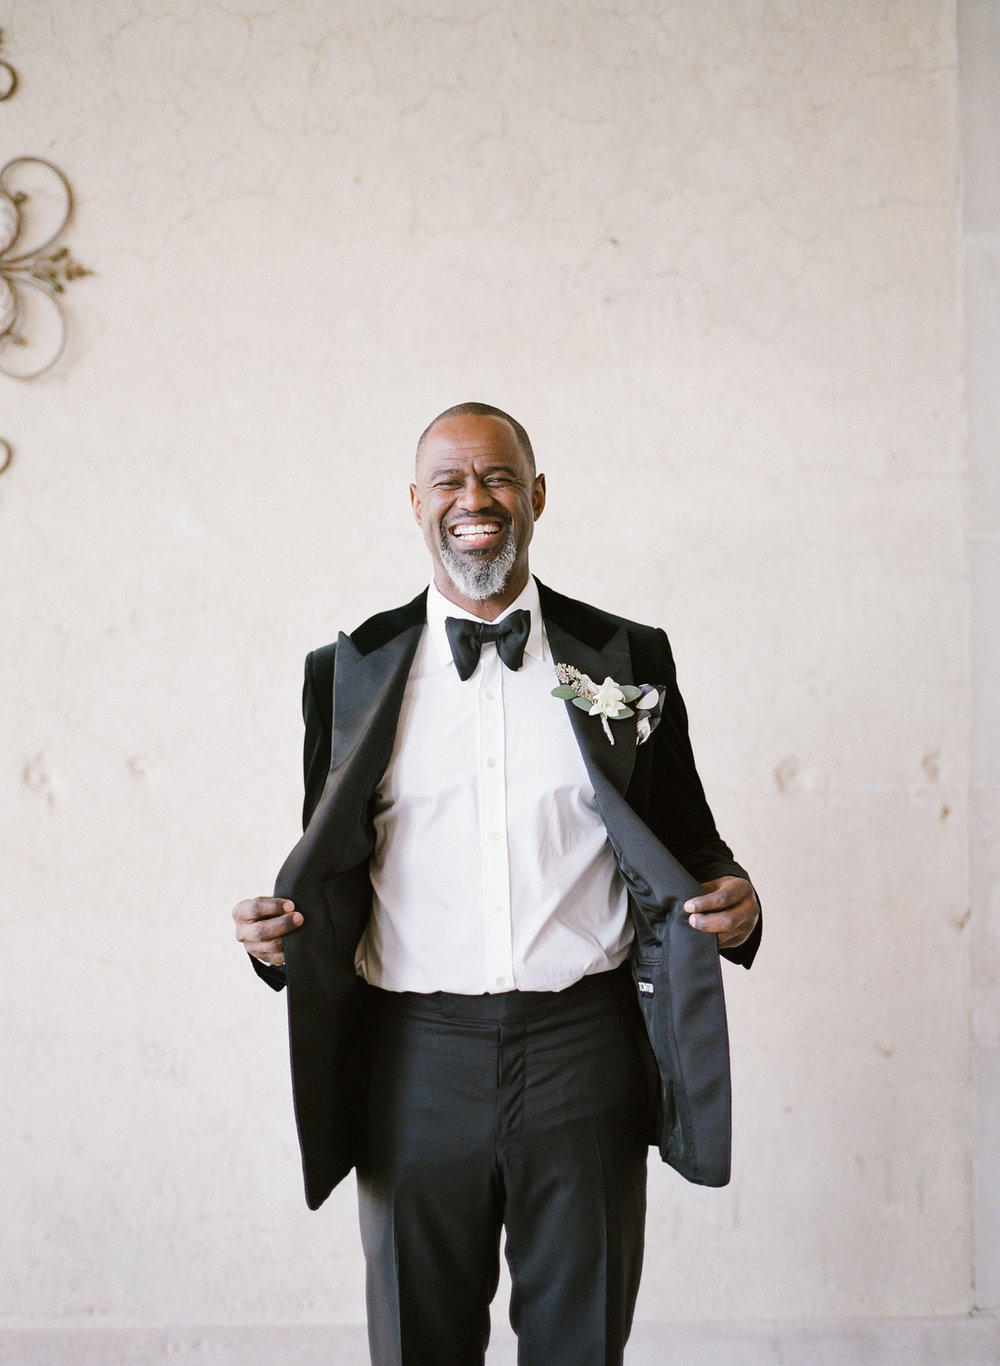 Brian-McKnight-wedding-oheka-castle-043.jpg